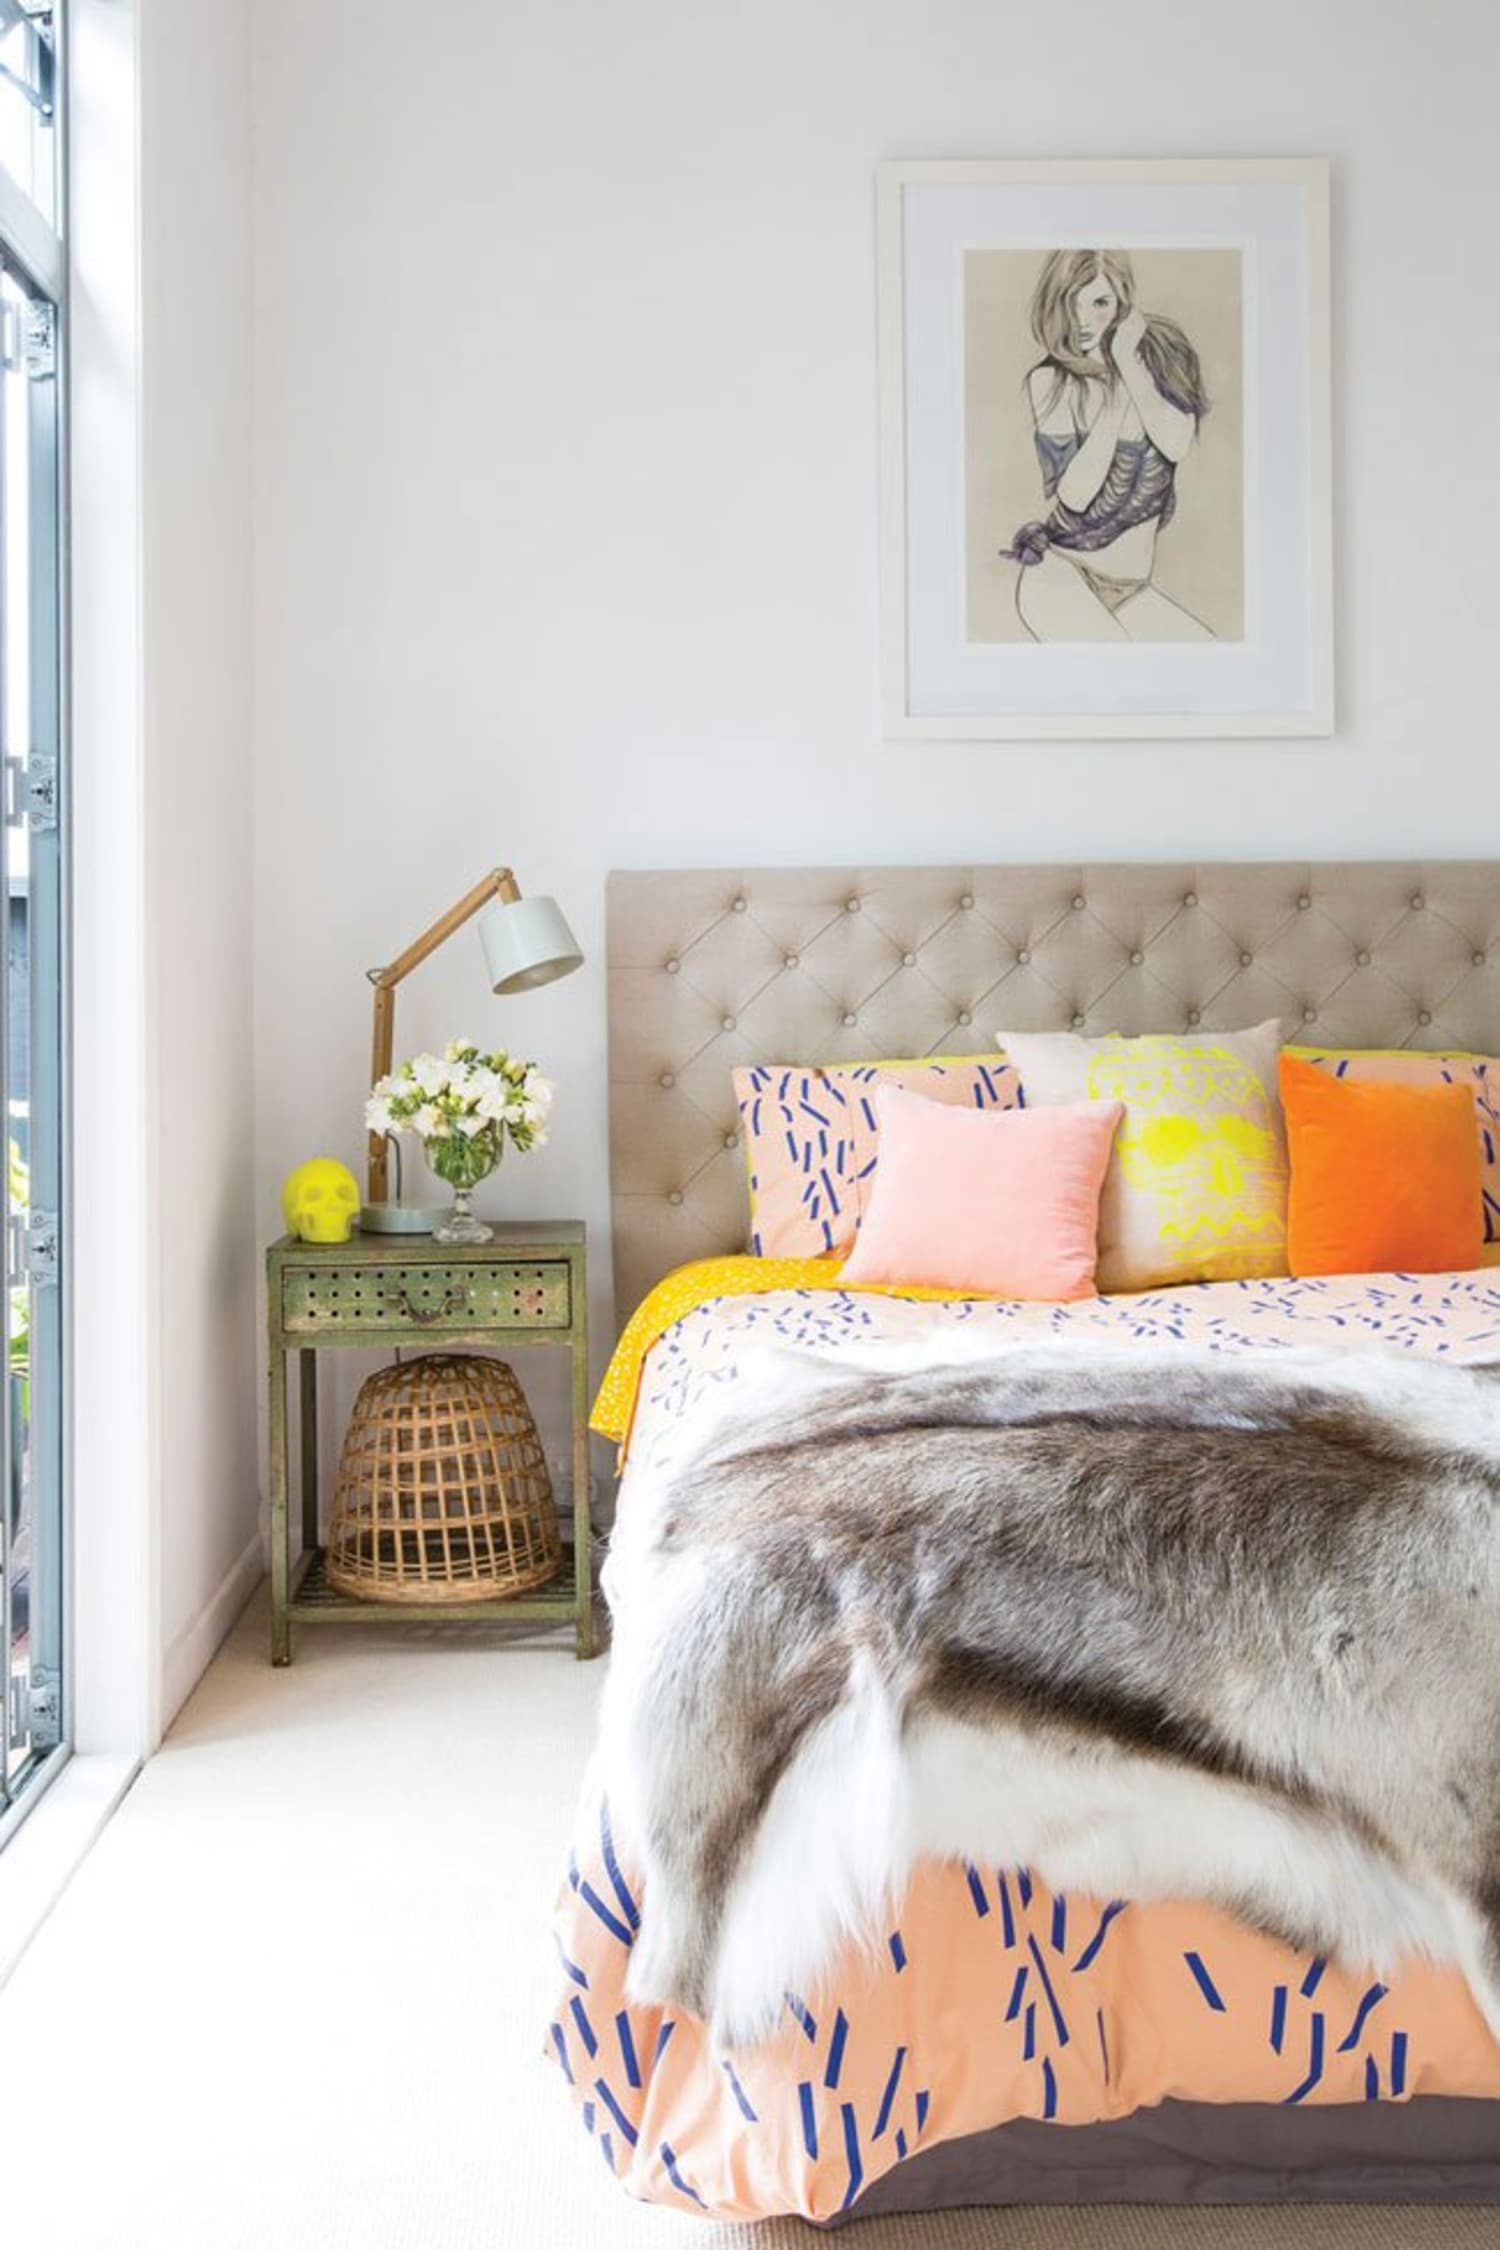 Bedroom decorating ideas 10 bold design elements to steal - Design your own bedroom ...